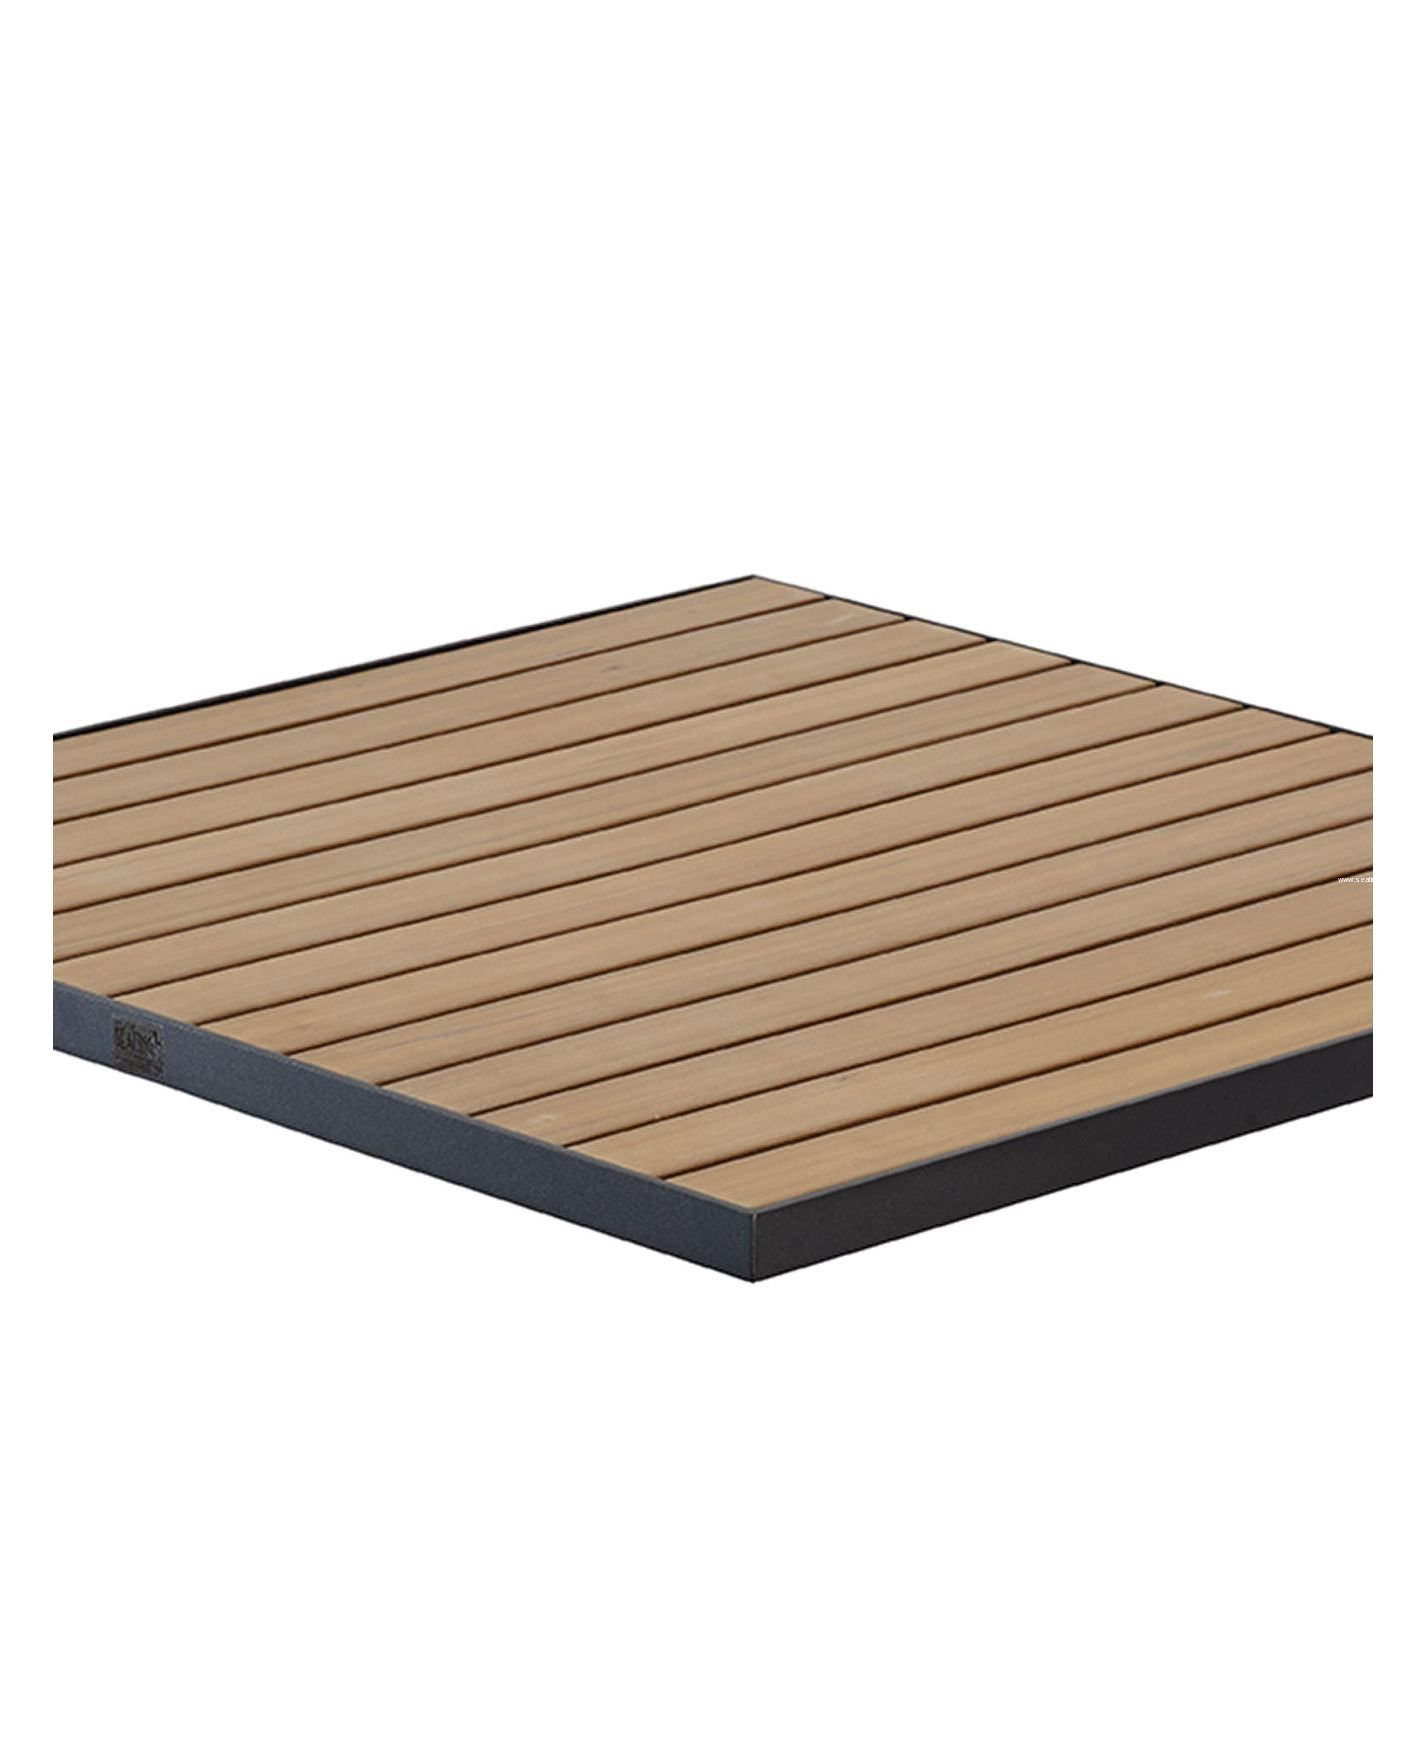 Ta Pt Tops Florida Seating Outdoor Synthetic Teak Wood Tops